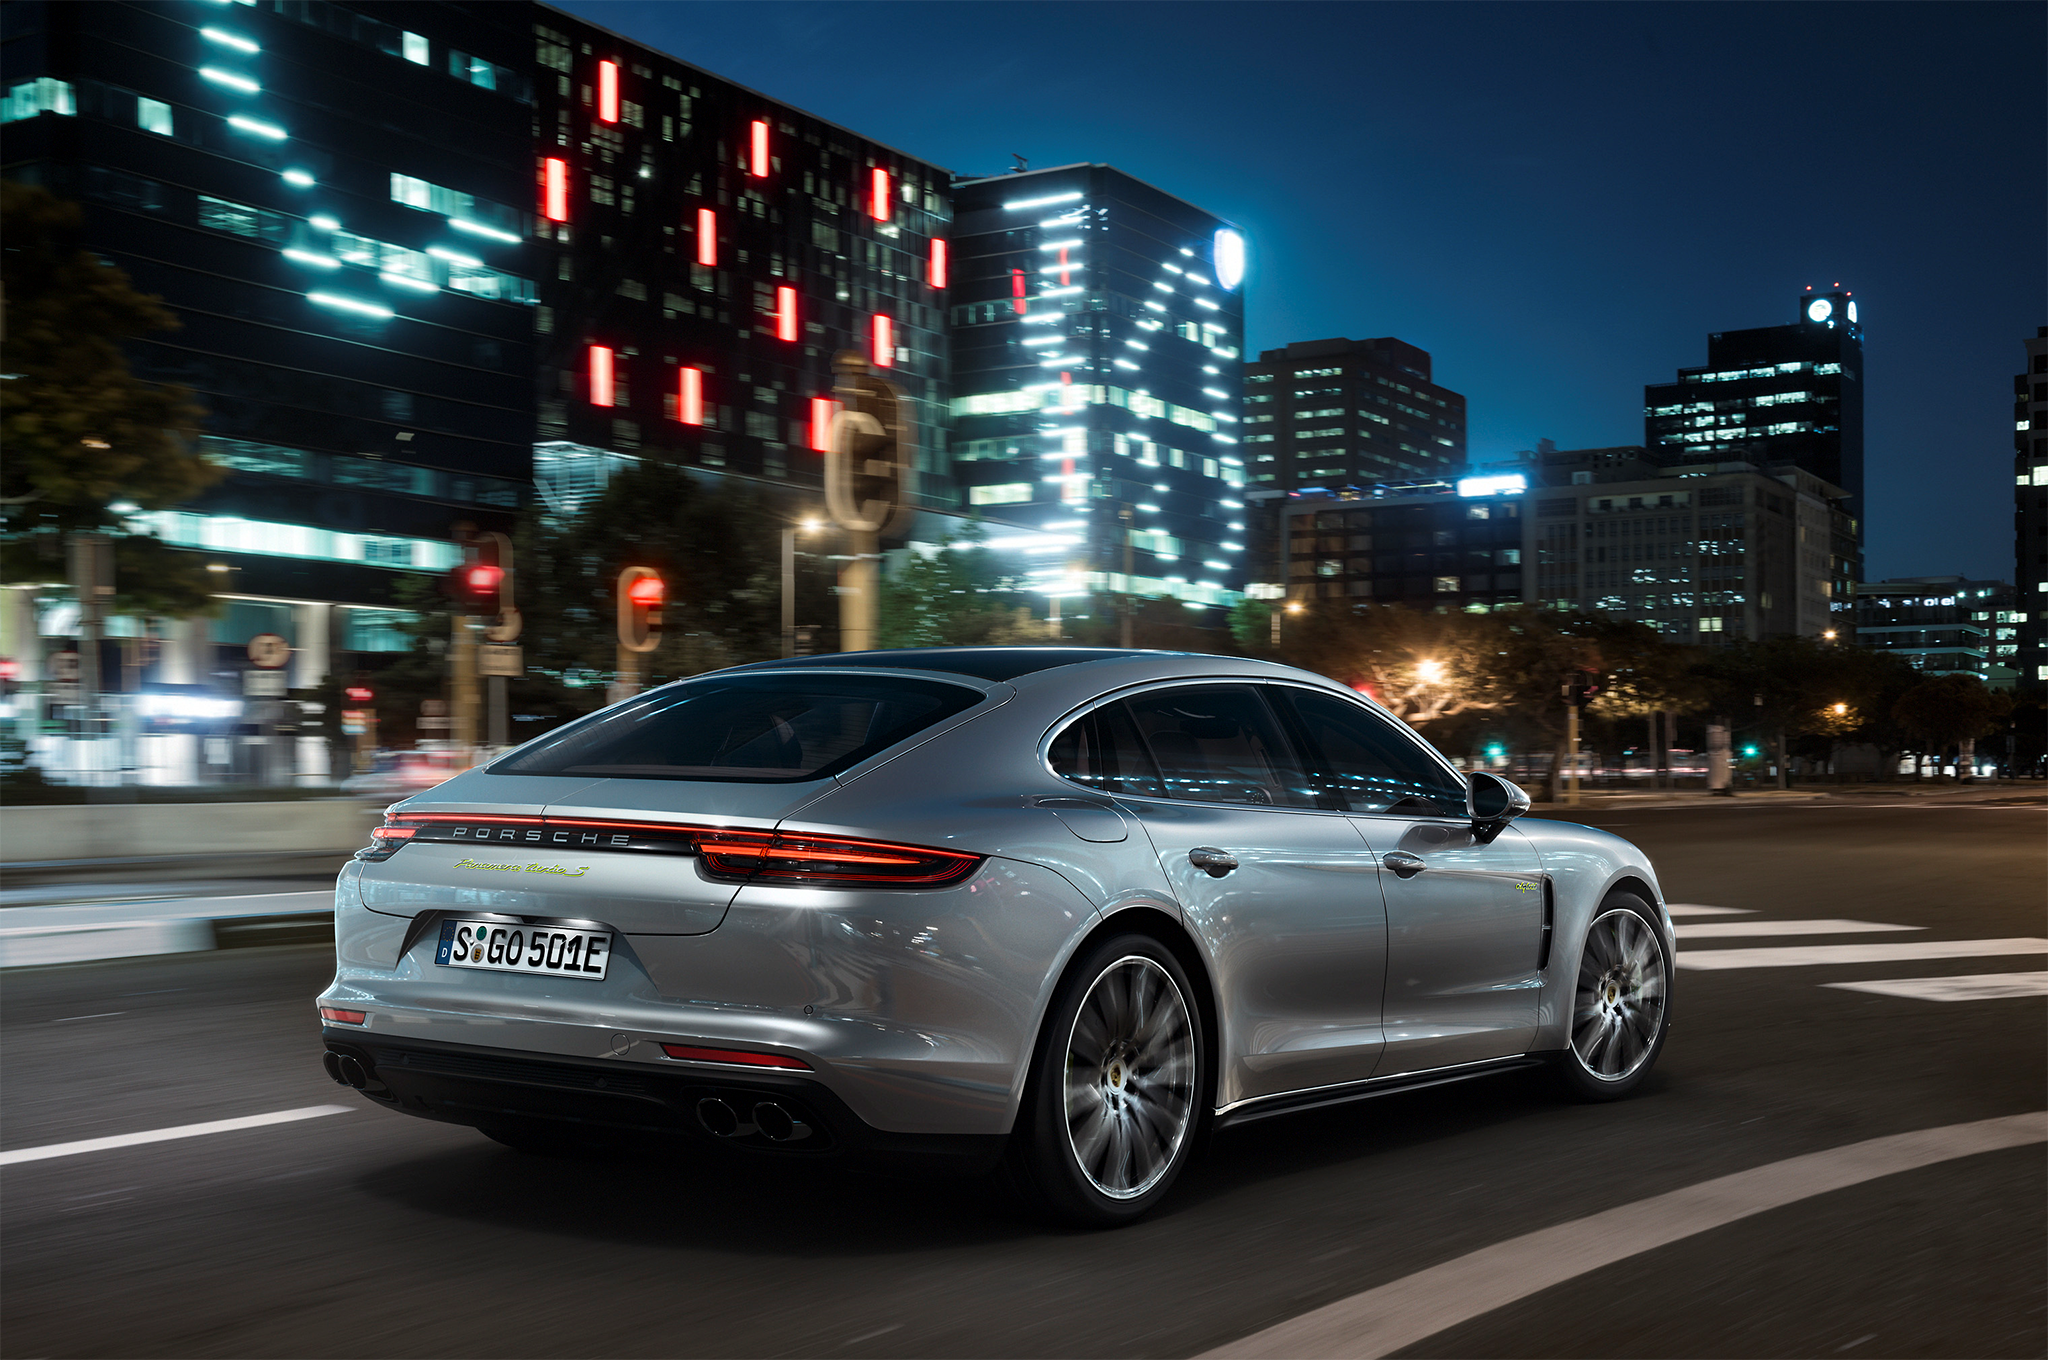 2018 Porsche Panamera Turbo S E Hybrid Rear Three Quarters In Motion 2